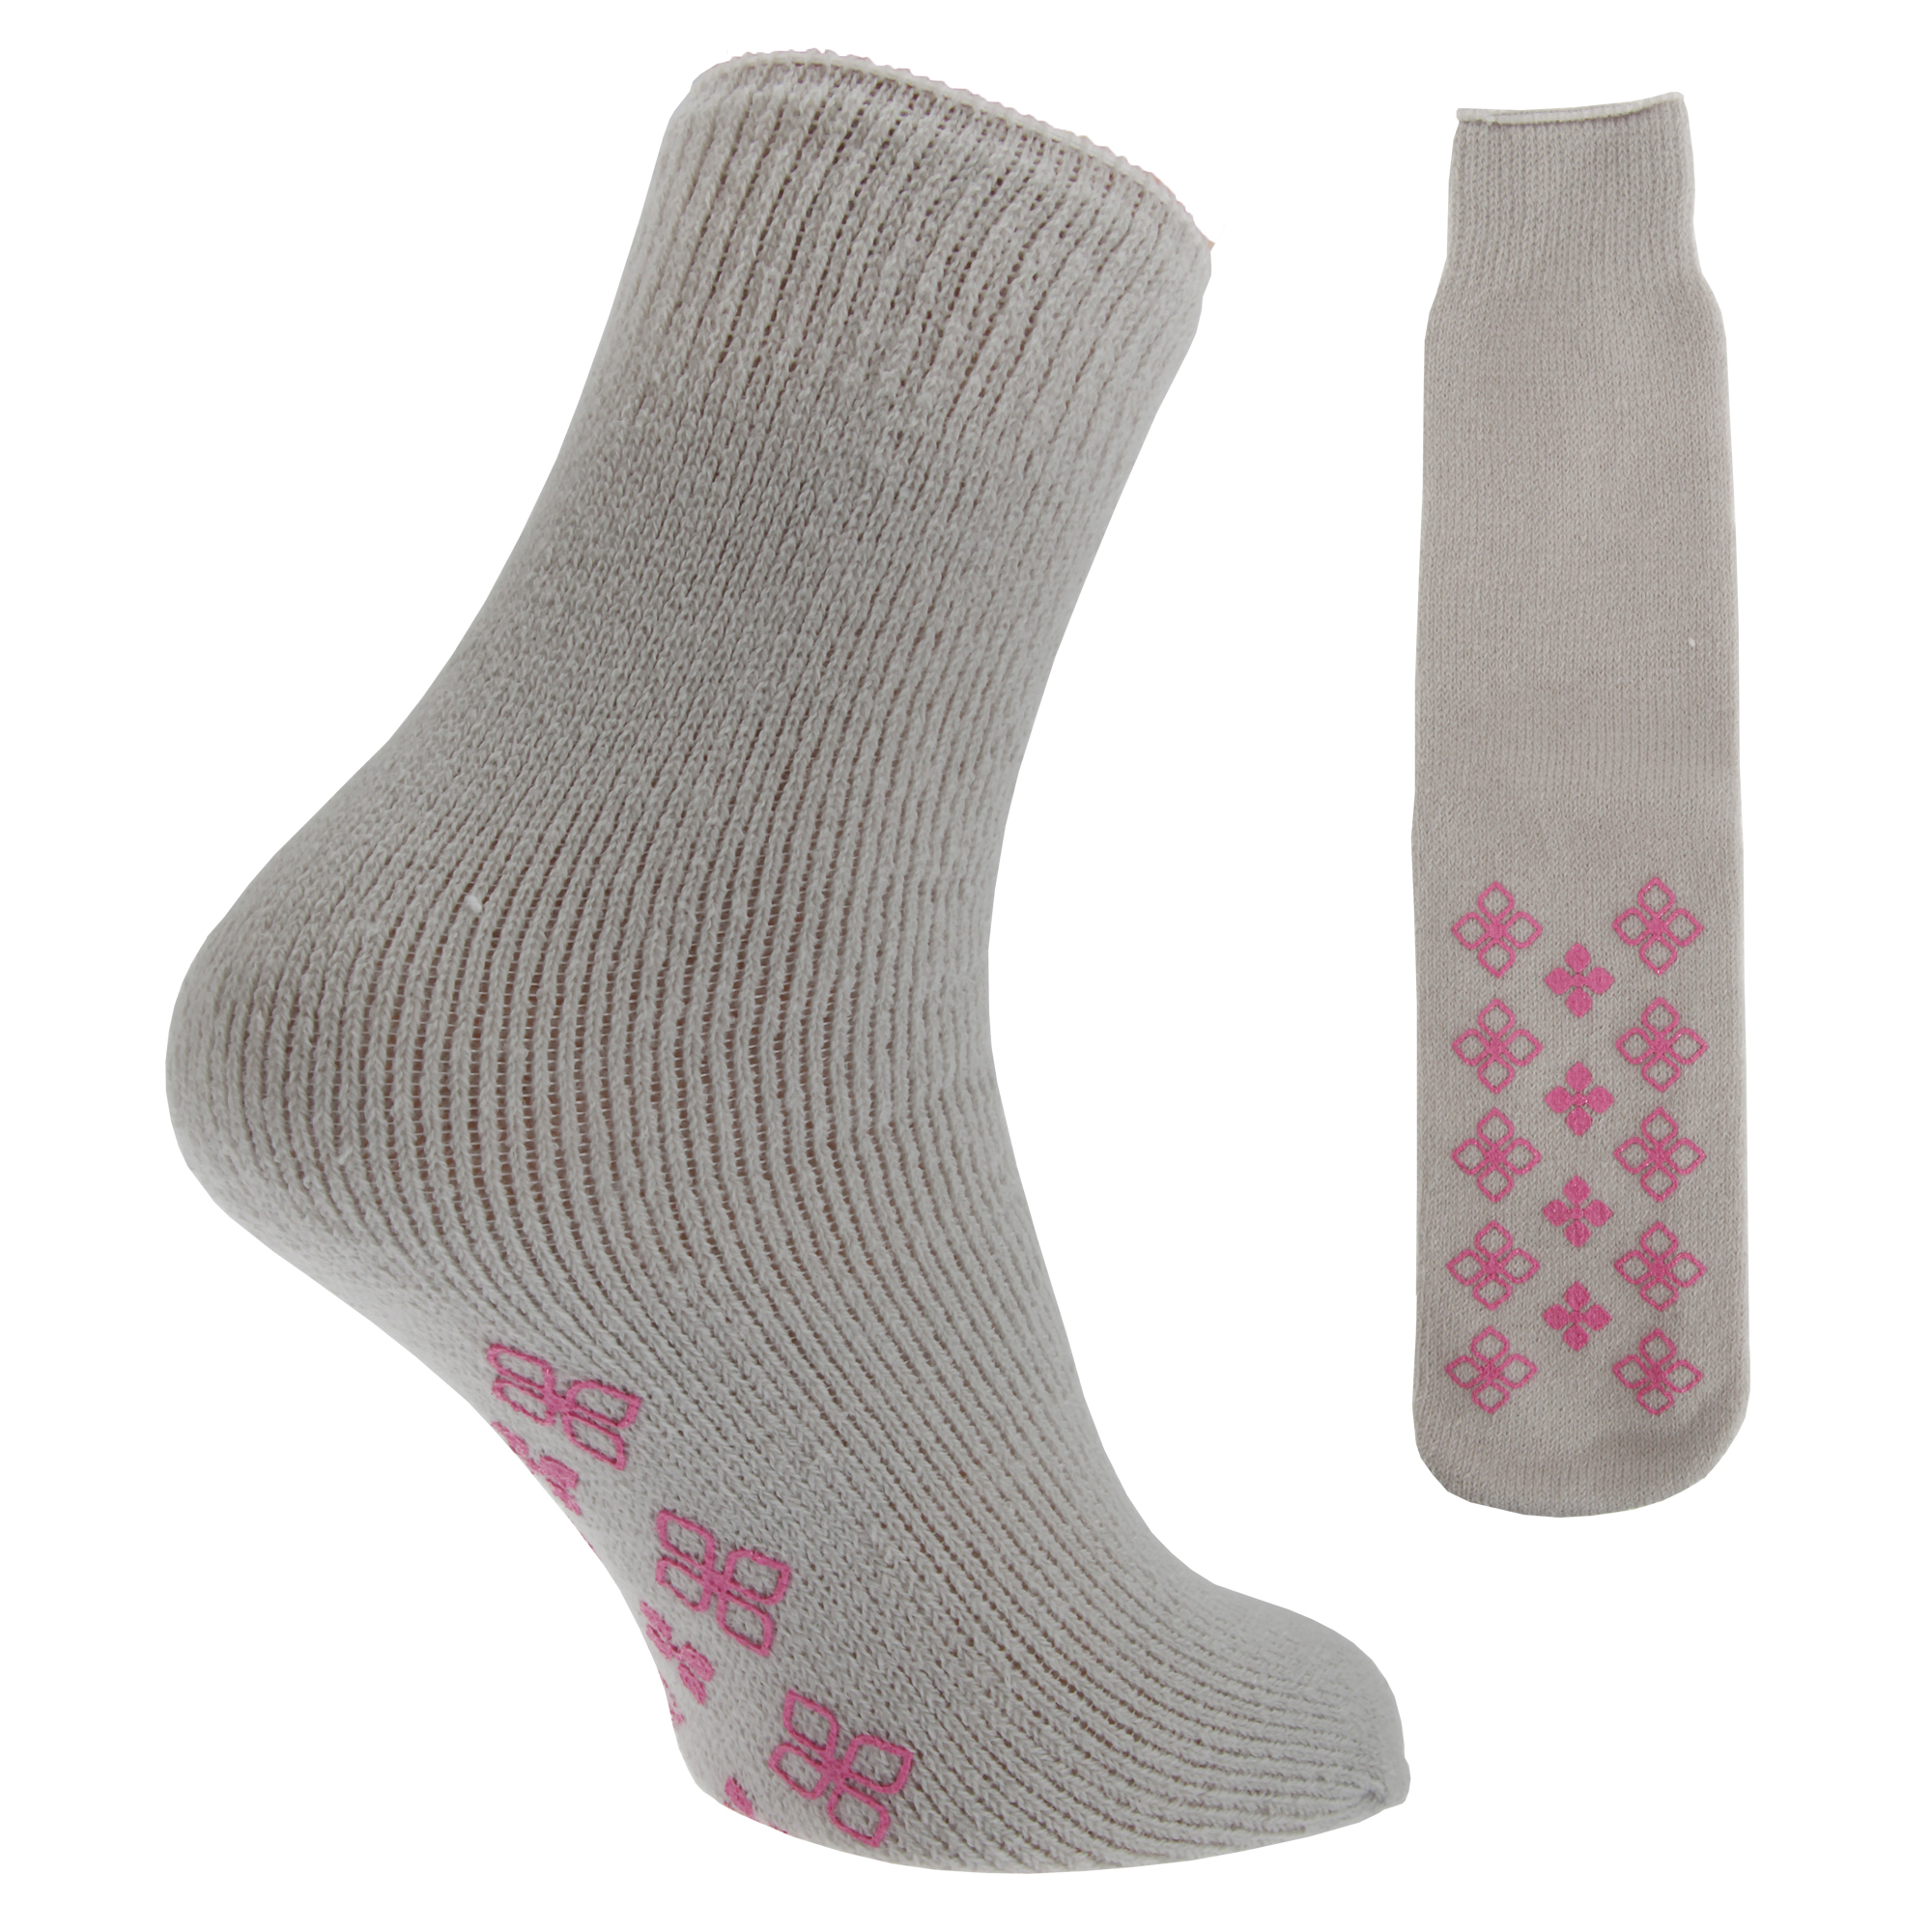 Ladies Slipper Socks. Made for loafing and lounging, our ladies' slipper socks are a cosy, snuggly alternative to 'proper' slippers, with chunky, thick fleece knits .